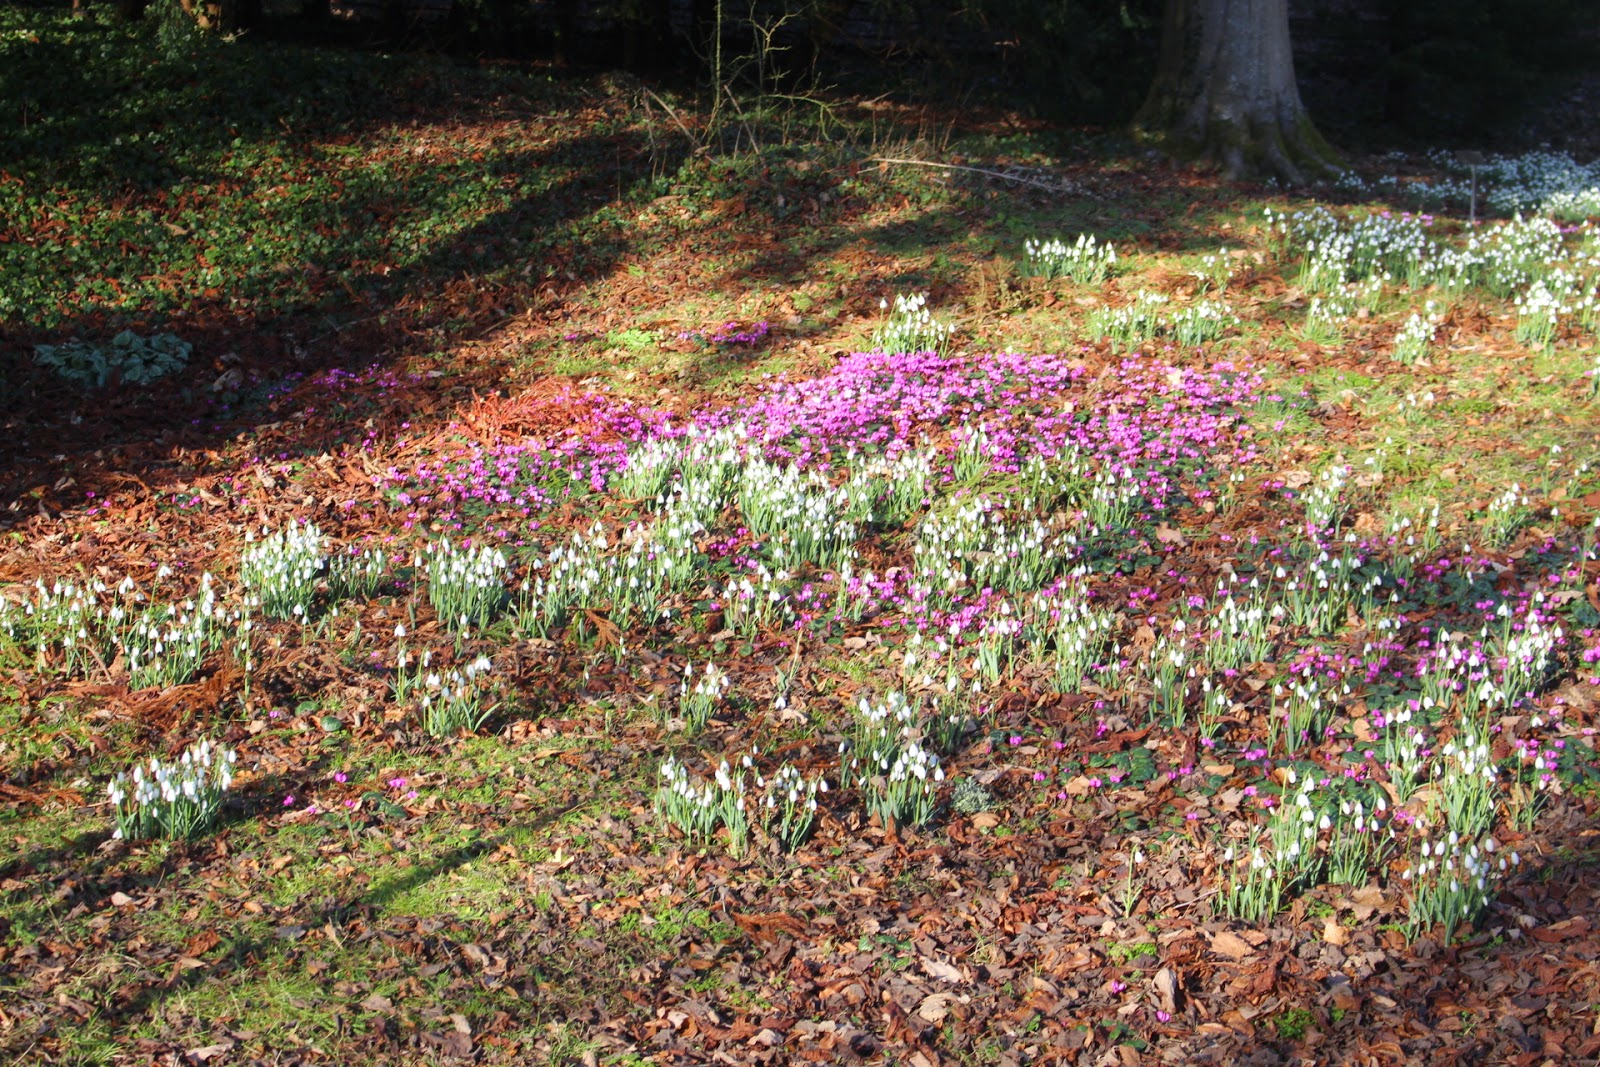 Snowdrops and cyclamen